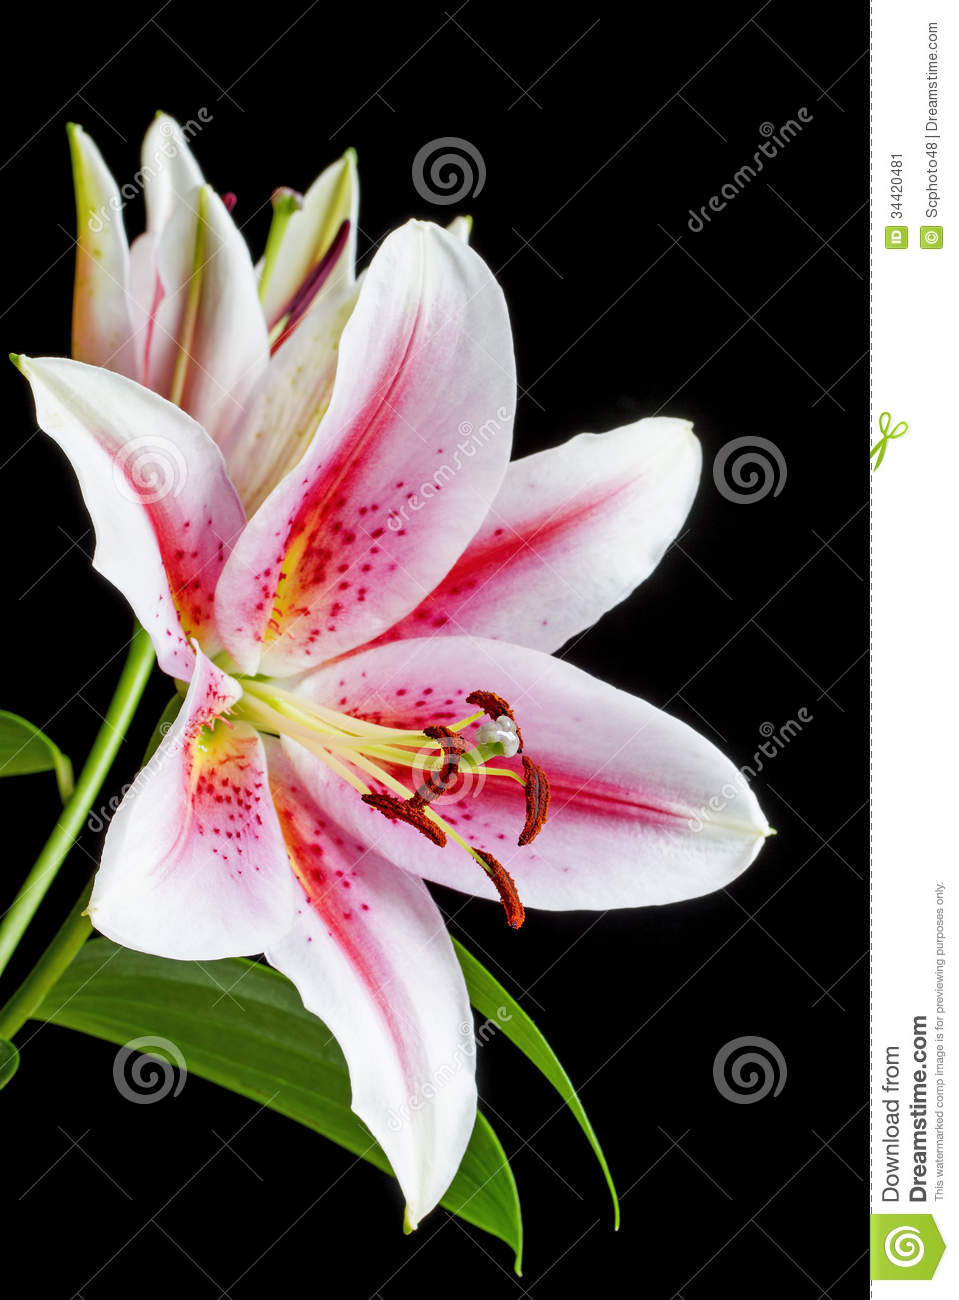 Close up image of pink and white lily stock image image of nobody close up image of pink and white lily mightylinksfo